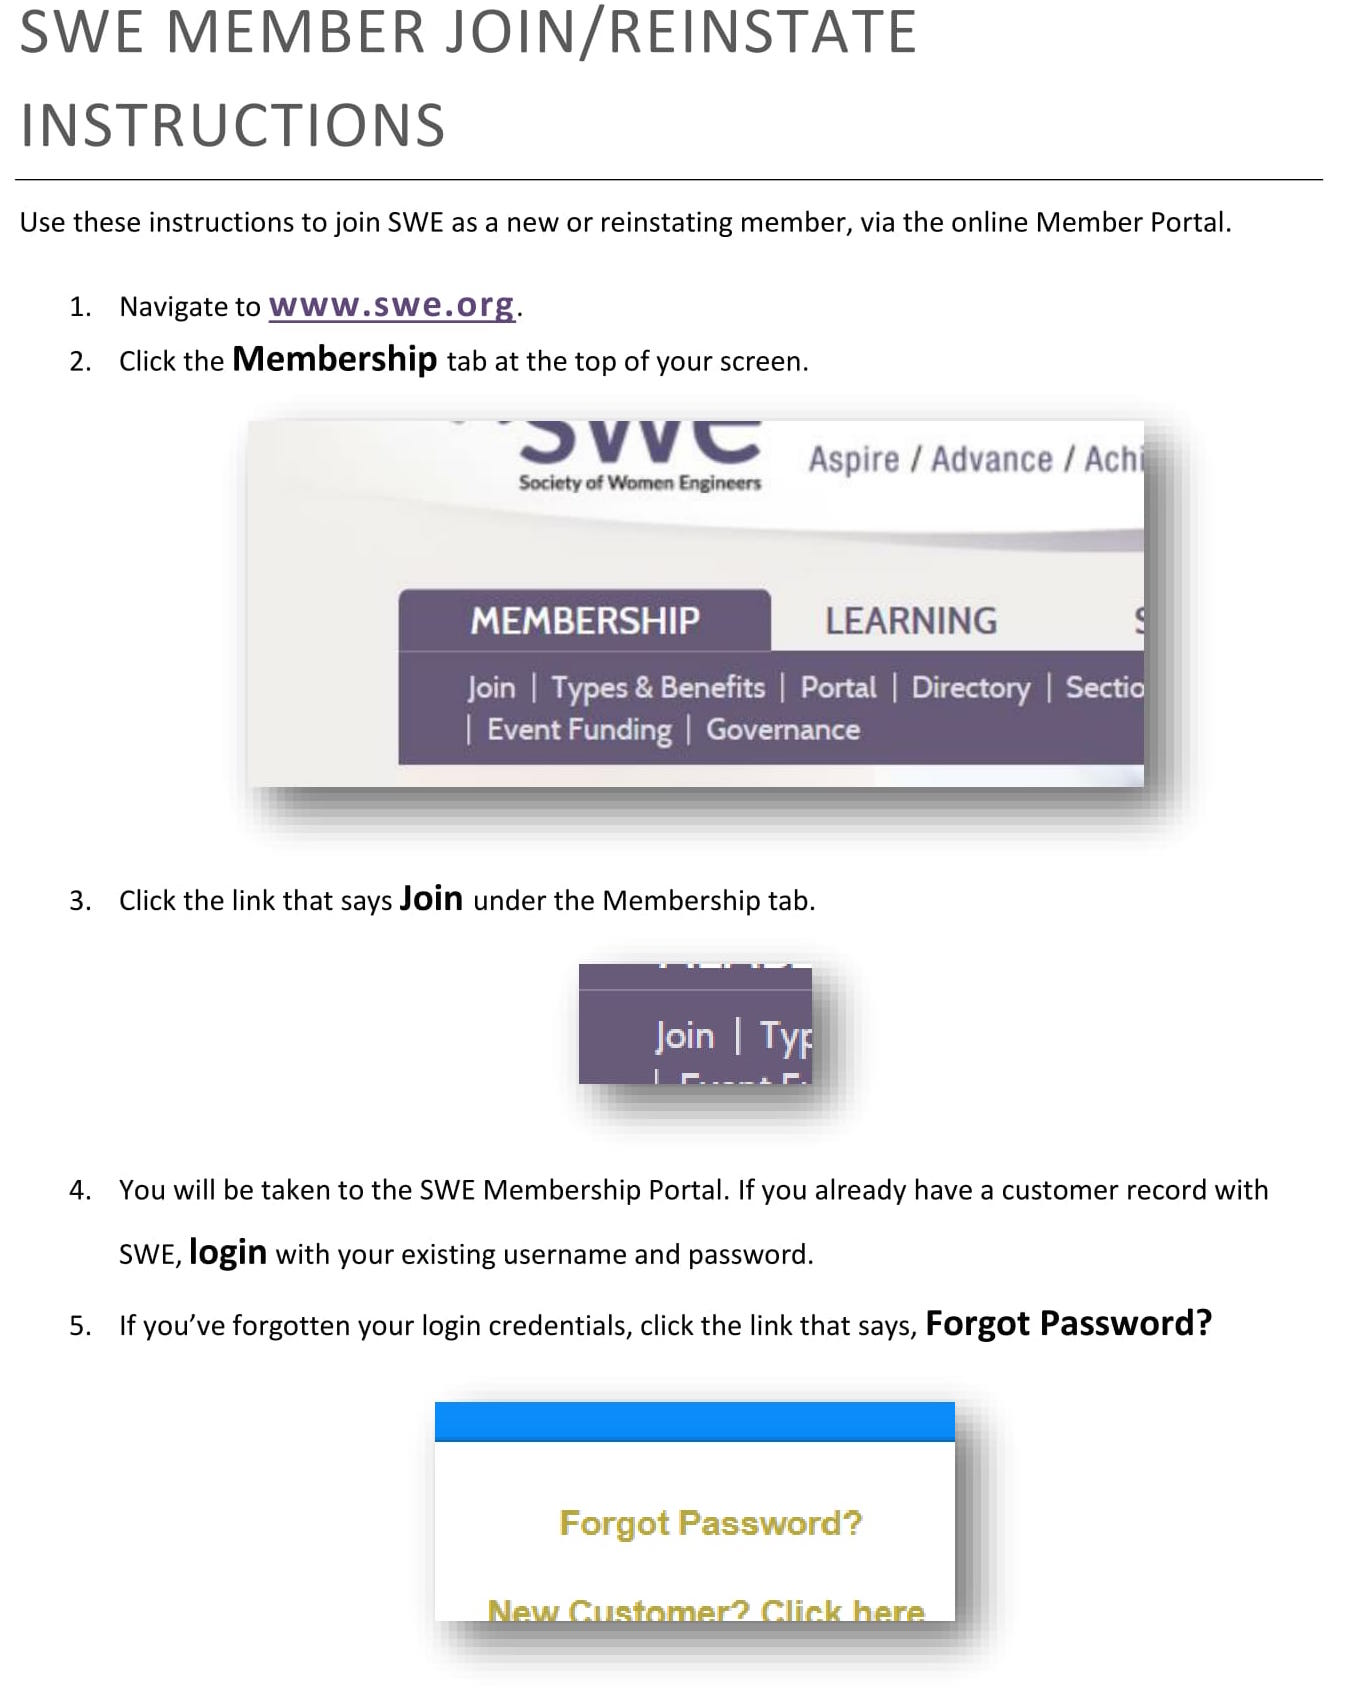 Join-Reinstate Instructions SWE FY18-1.jpg